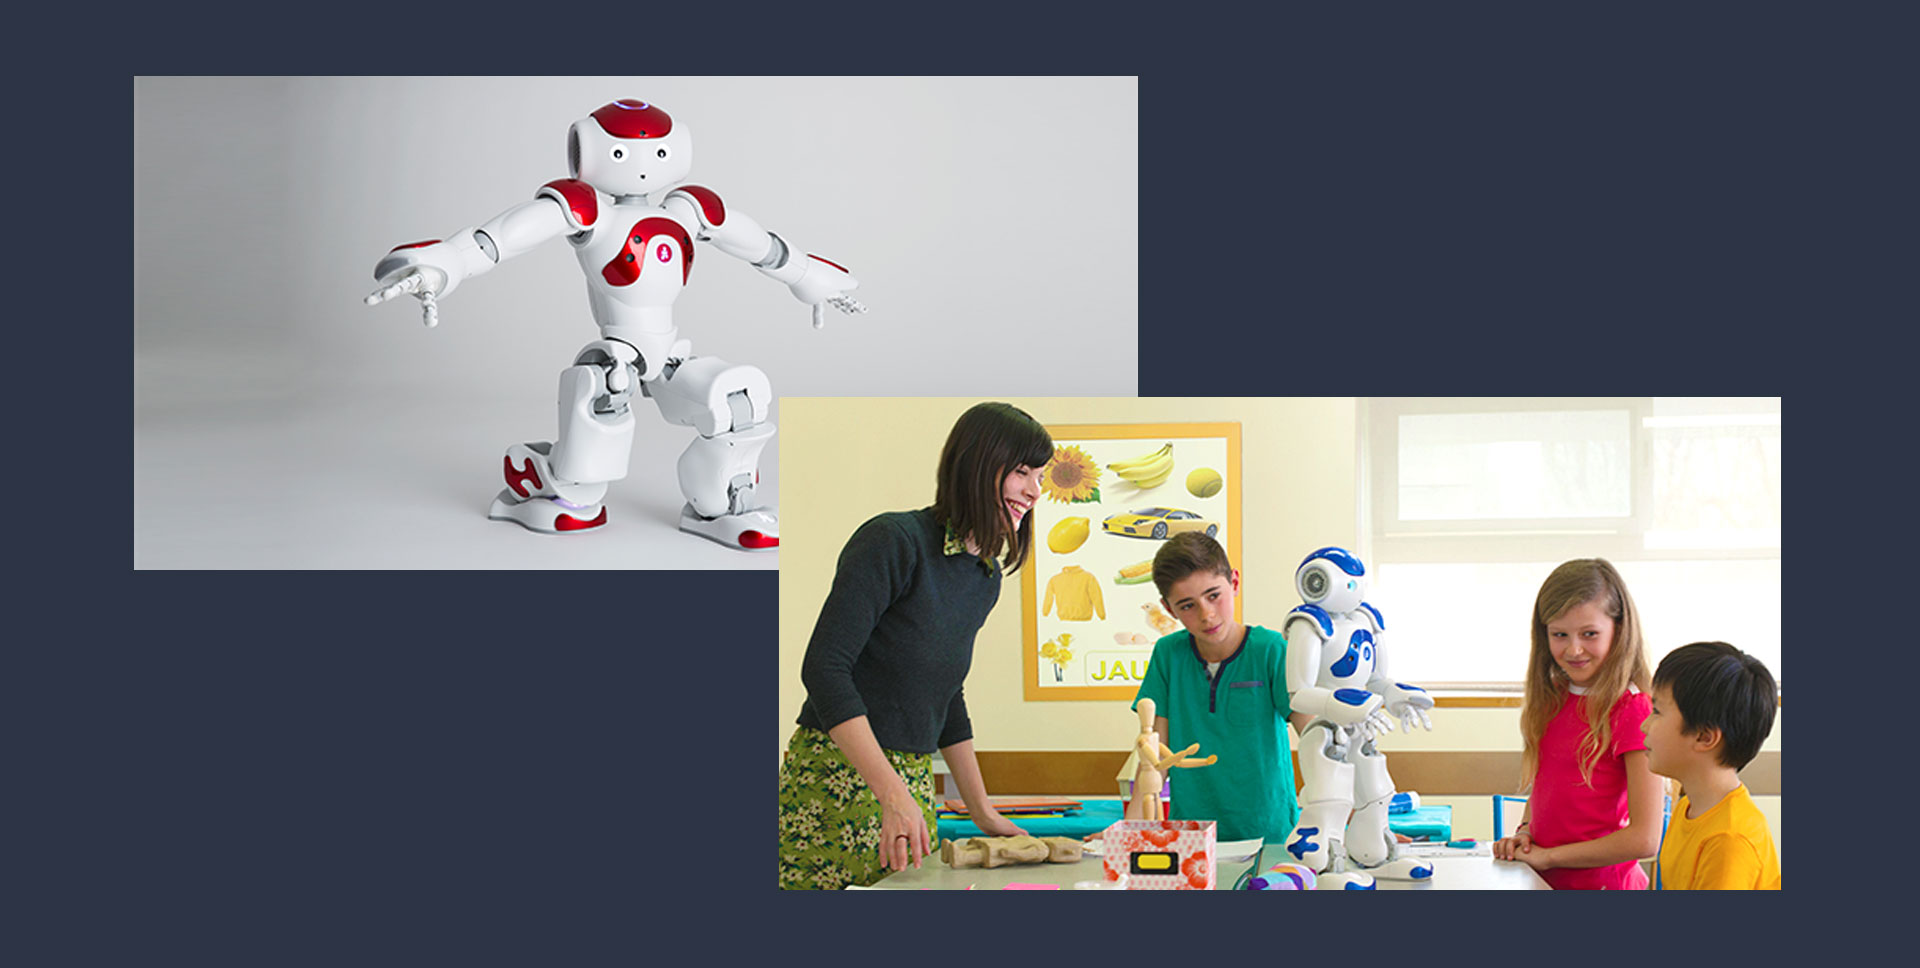 Photos of Nao, a robot friend designed by the company Softbank Robotics